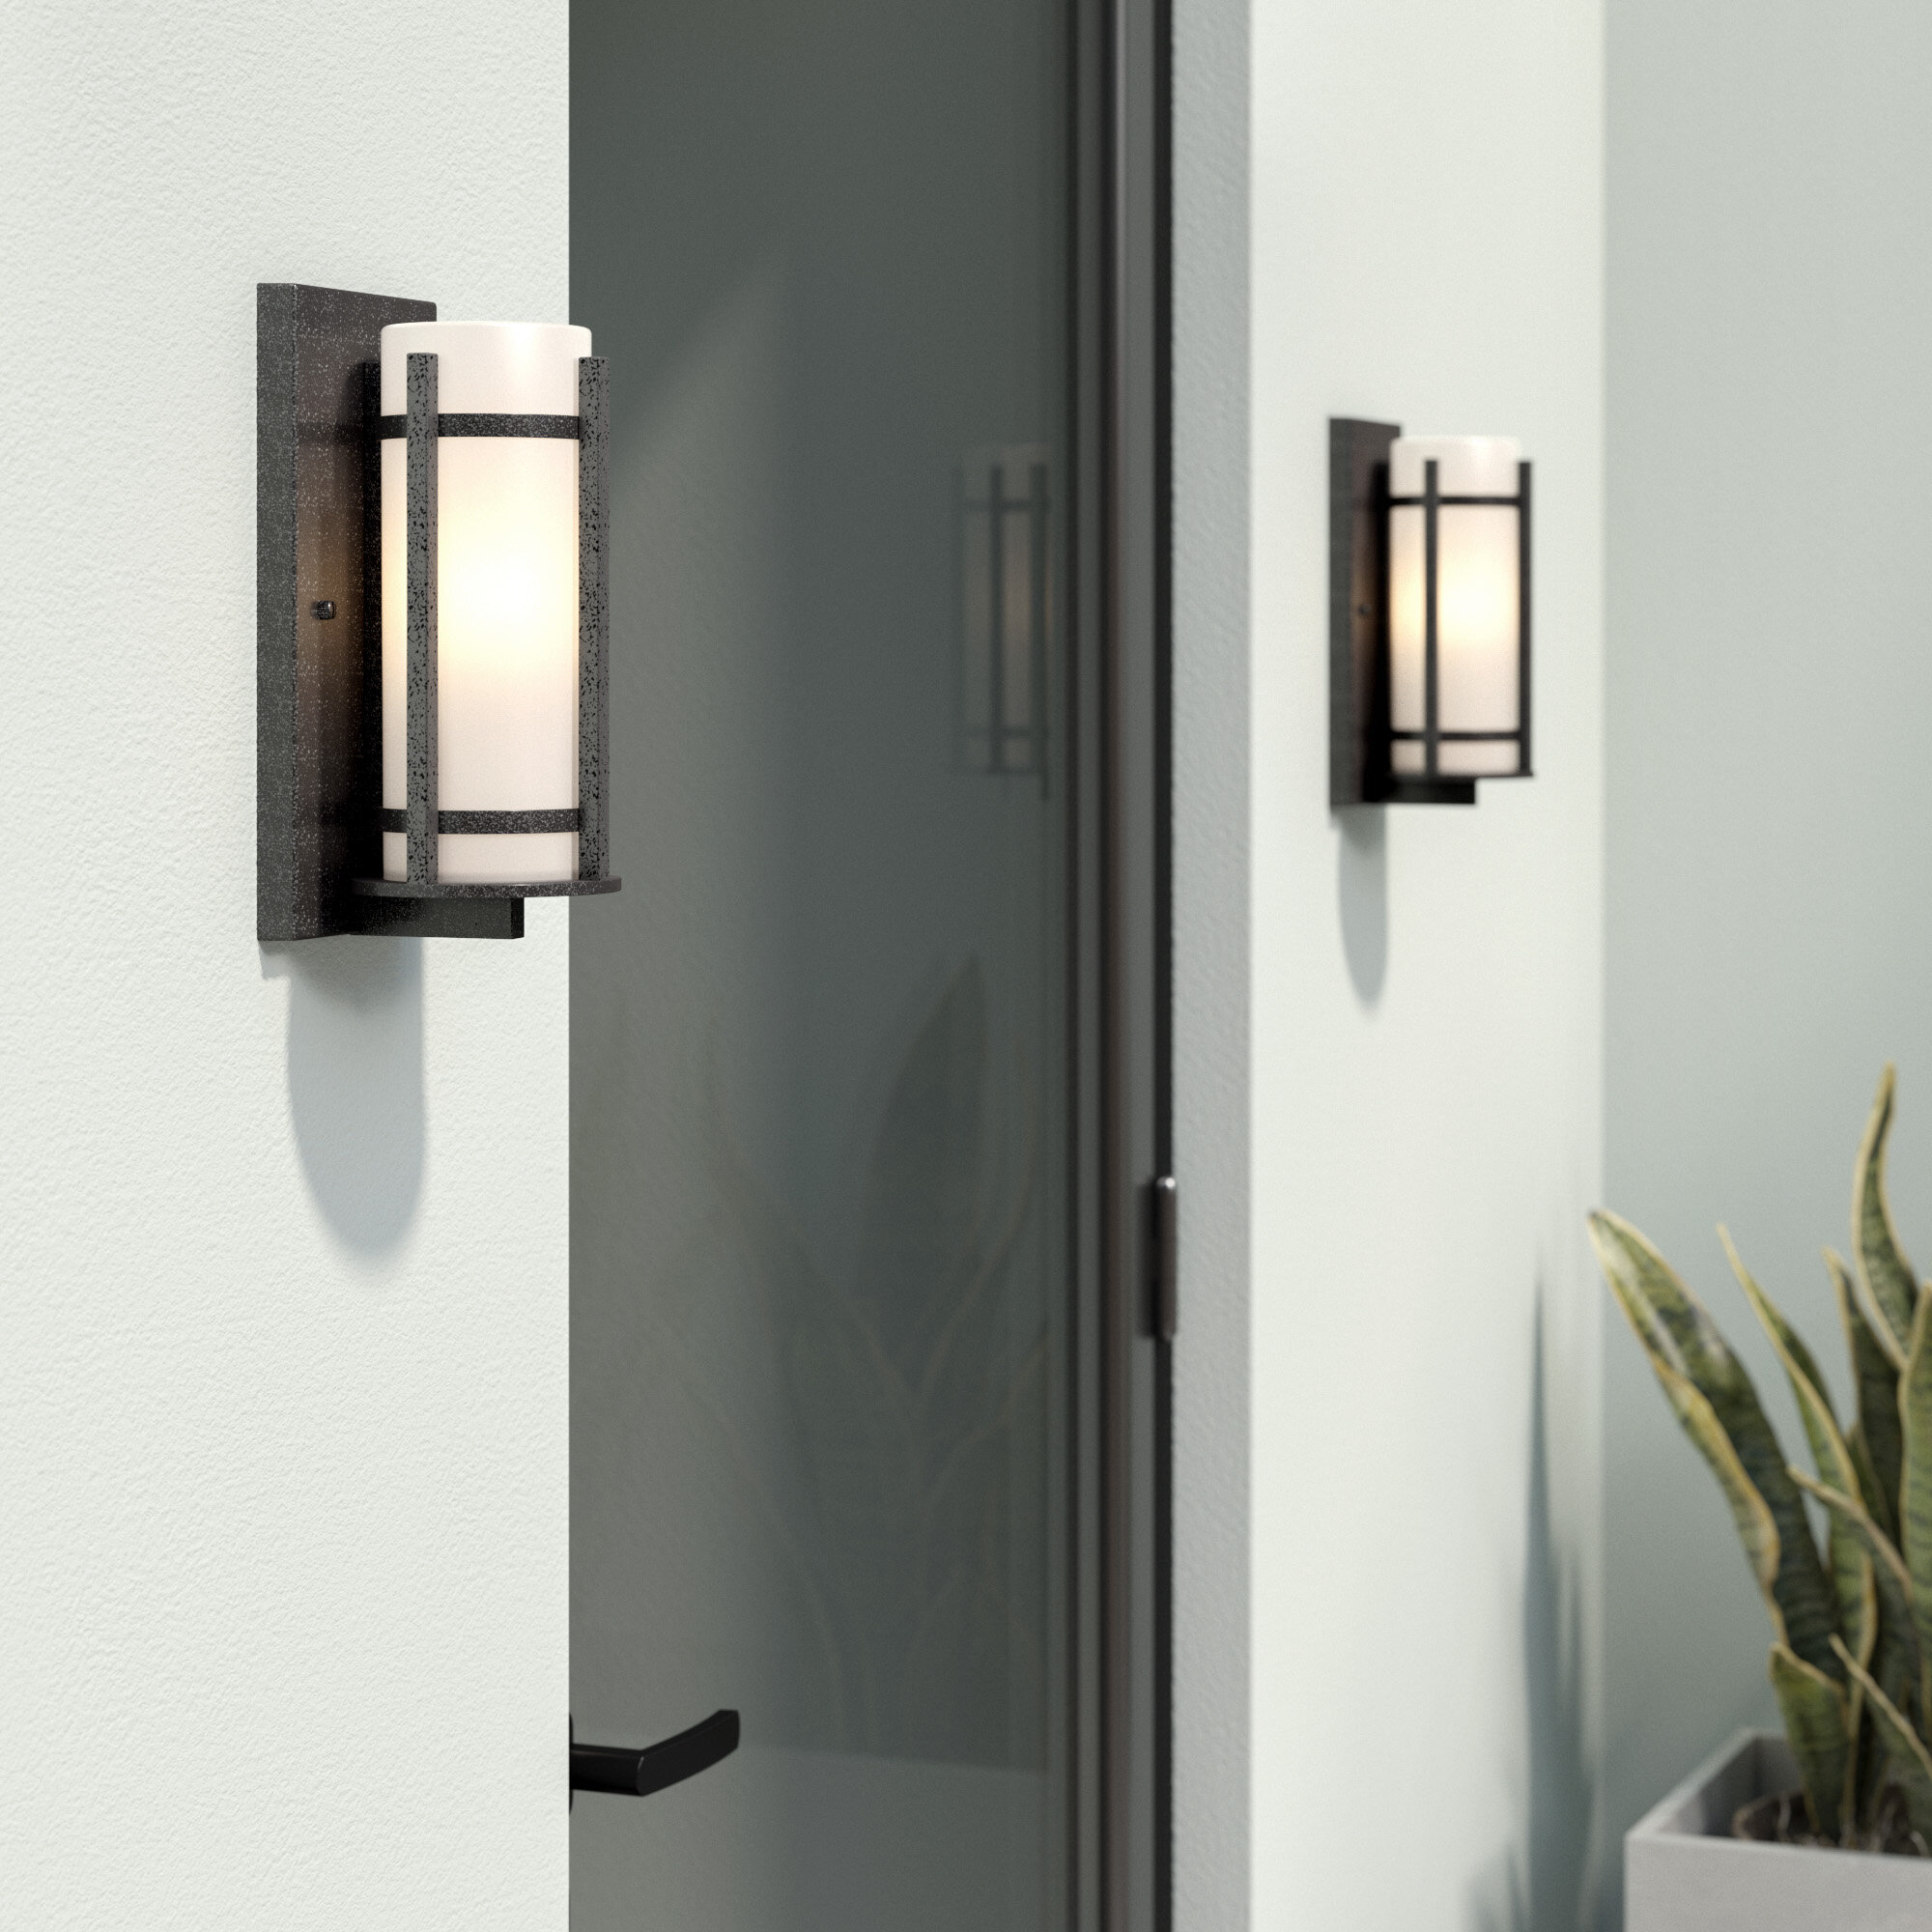 light sconce bulkhead item lightess square outdoor led lighting waterproof supplies exterior lights metal wall com